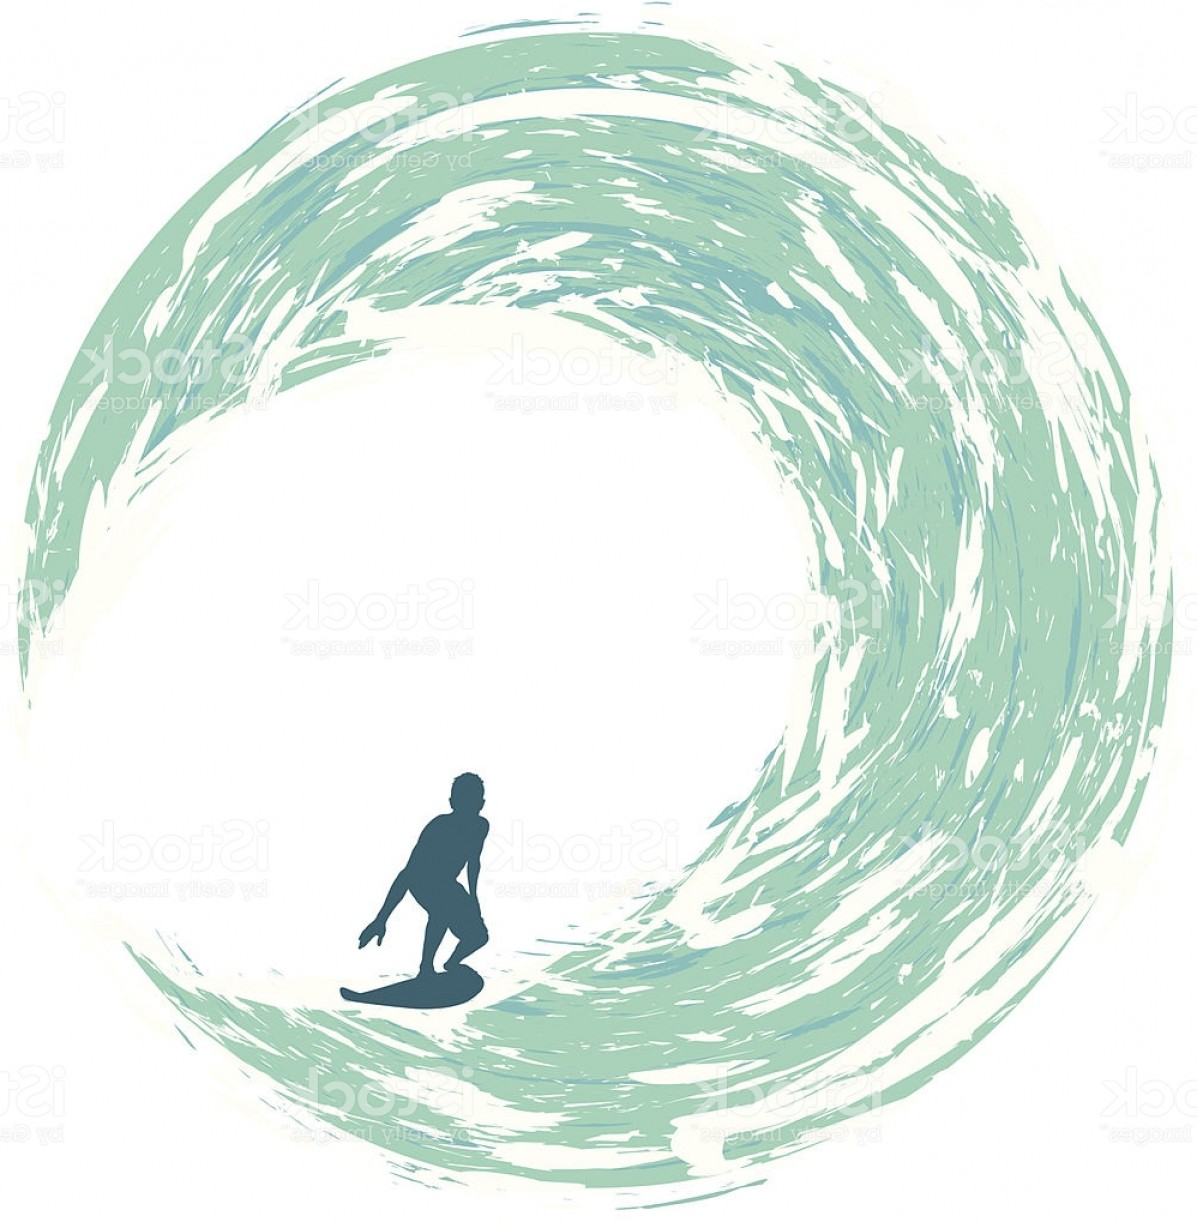 Waves With Surfer Silhouette Vector: Surfer Riding On A Circular Wave Gm